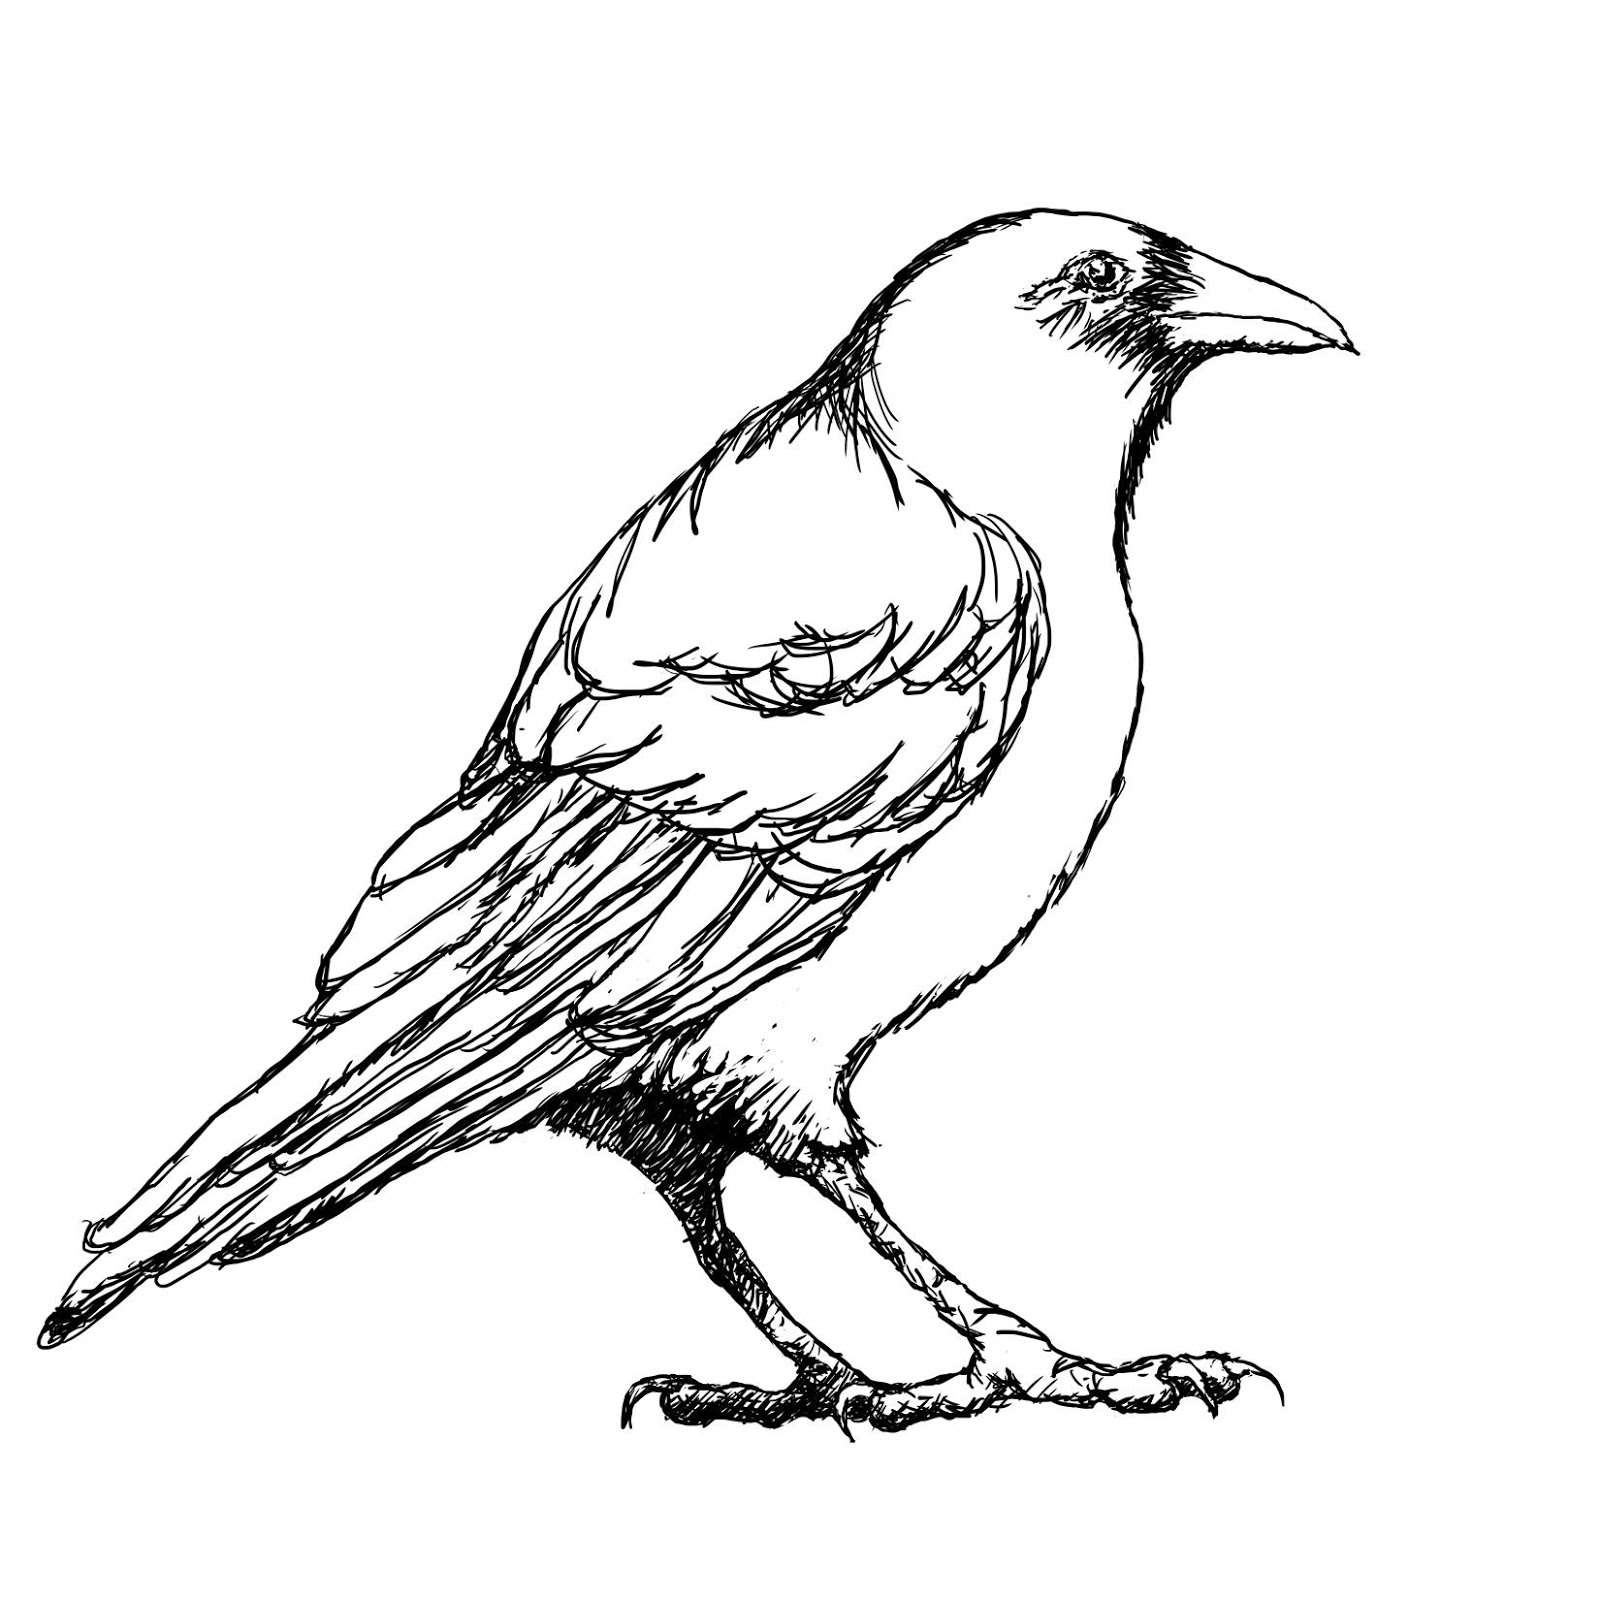 Crow outline clipart vector black and white download Crow outline clip art - ClipartPost vector black and white download